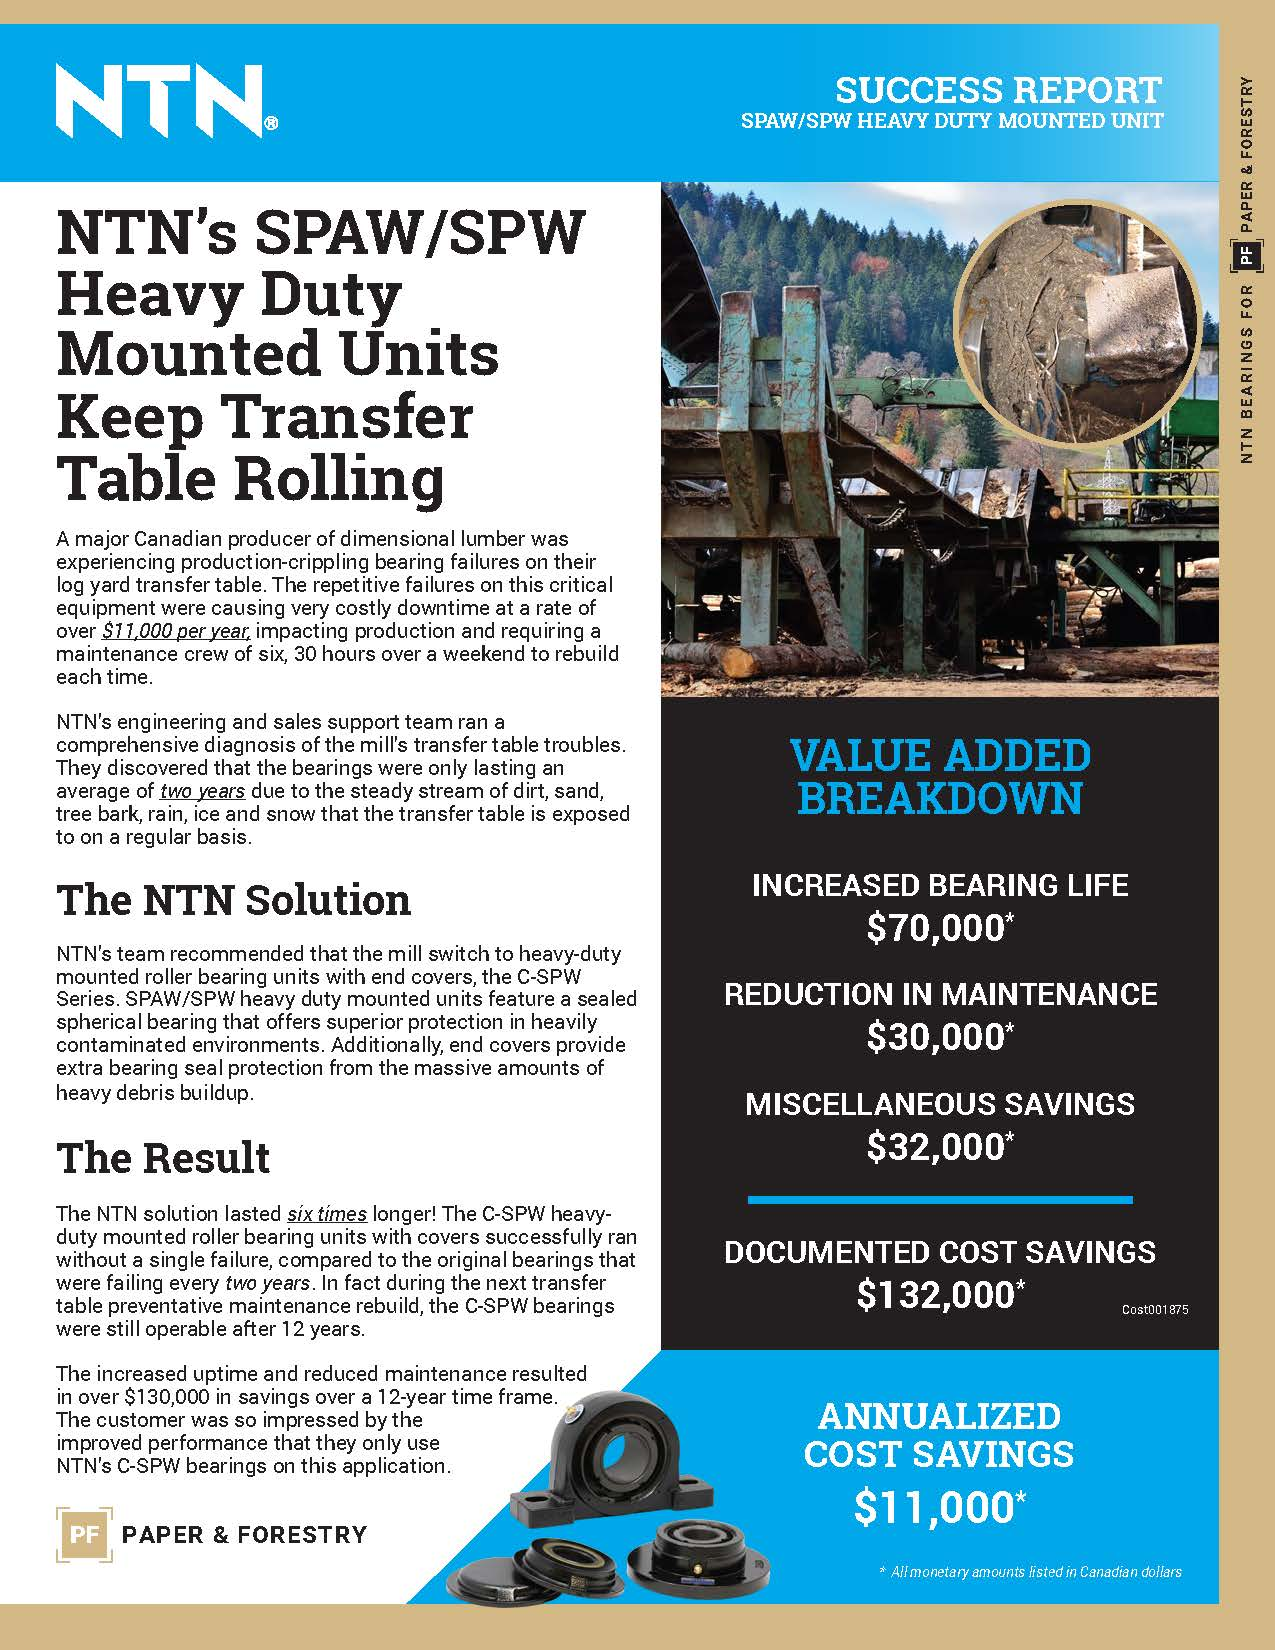 NTN SPAW/SPW heavy duty mounted bearing units transfer table